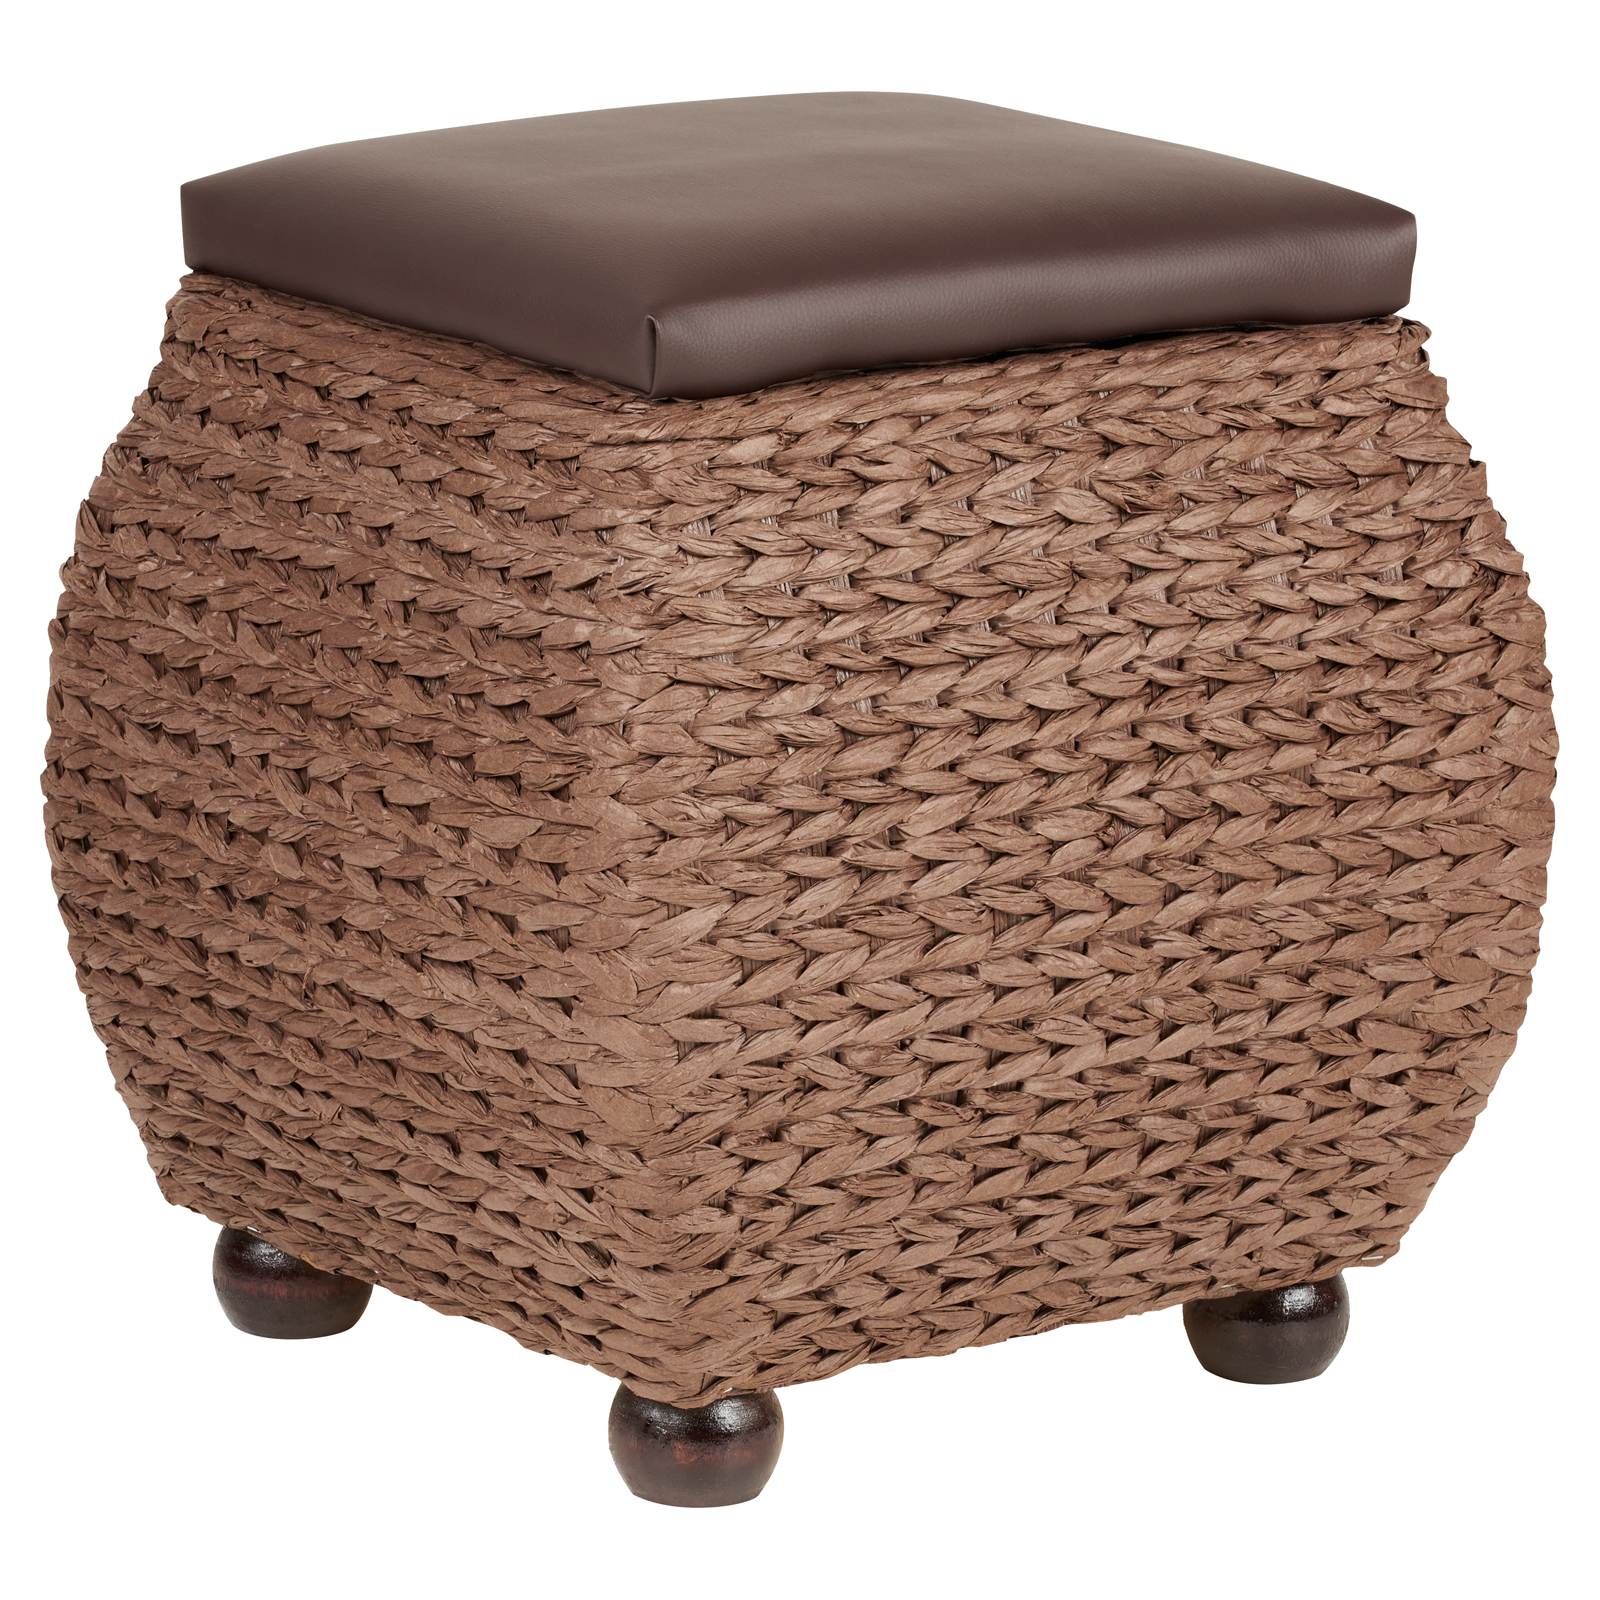 Strange Details About Hartleys Small Brown Storage Ottoman Footstool Bench Pouffe Toy Trunk Box Caraccident5 Cool Chair Designs And Ideas Caraccident5Info